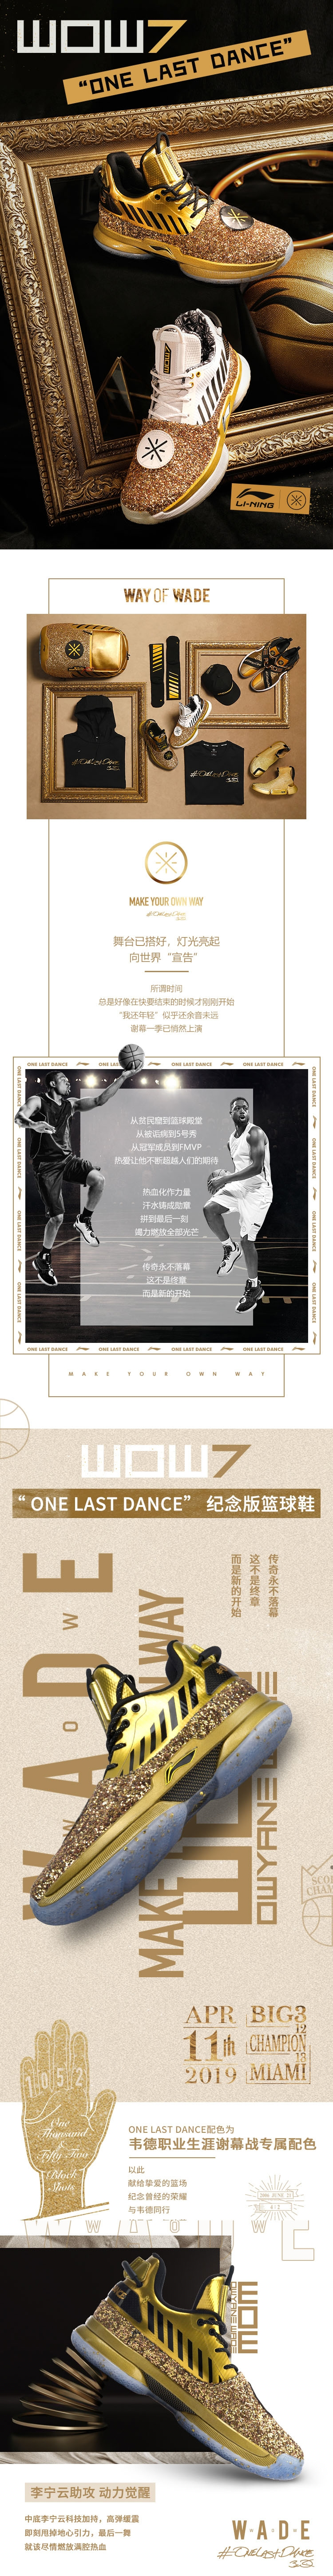 Way of Wade 7 One Last Dance Commemorative Edition Home